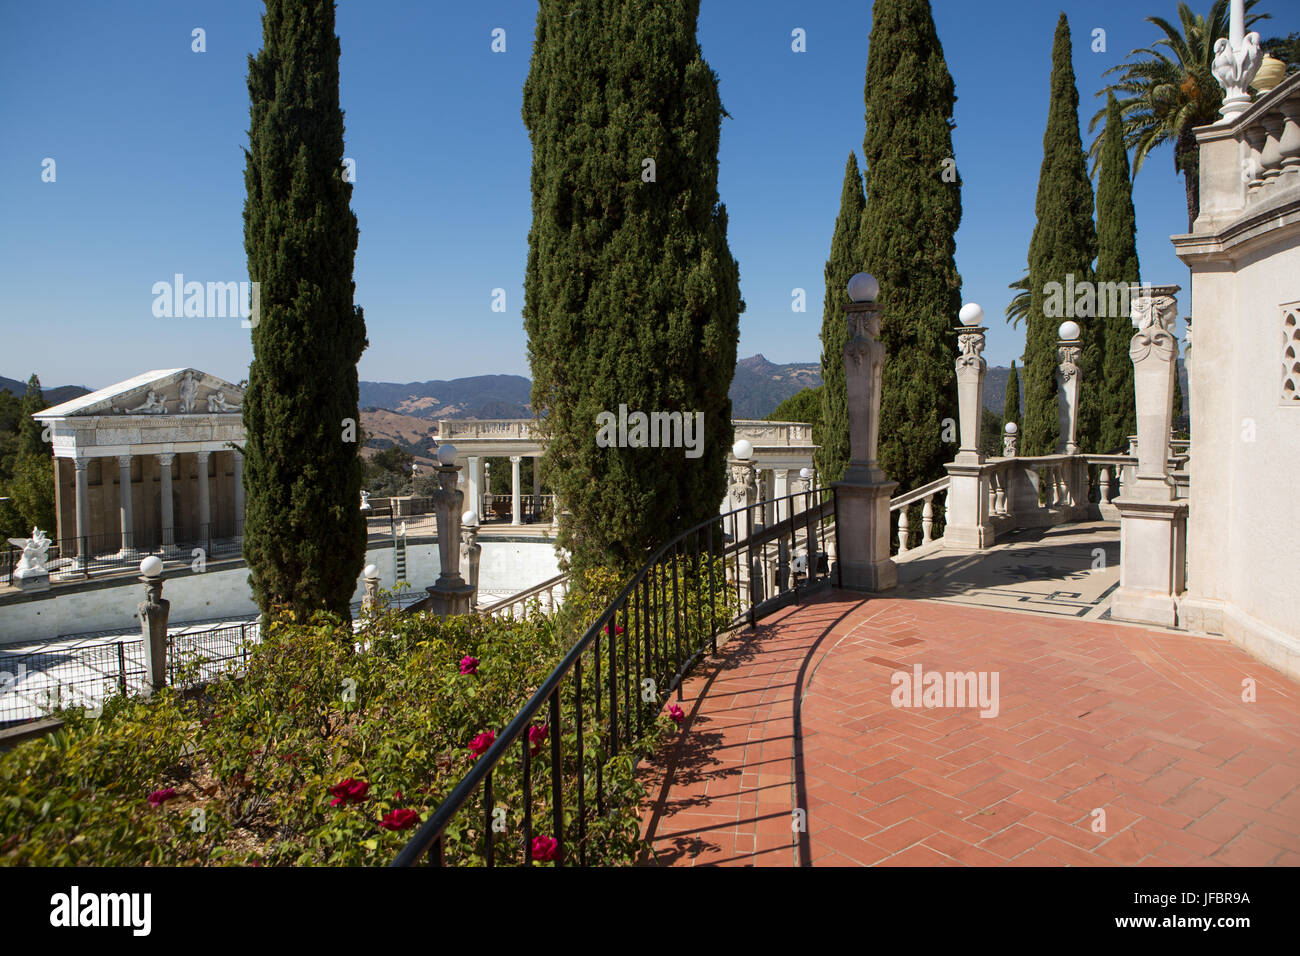 The Neptune Pool and veranda at Hearst Castle are landscaped with trees and plants. Stock Photo